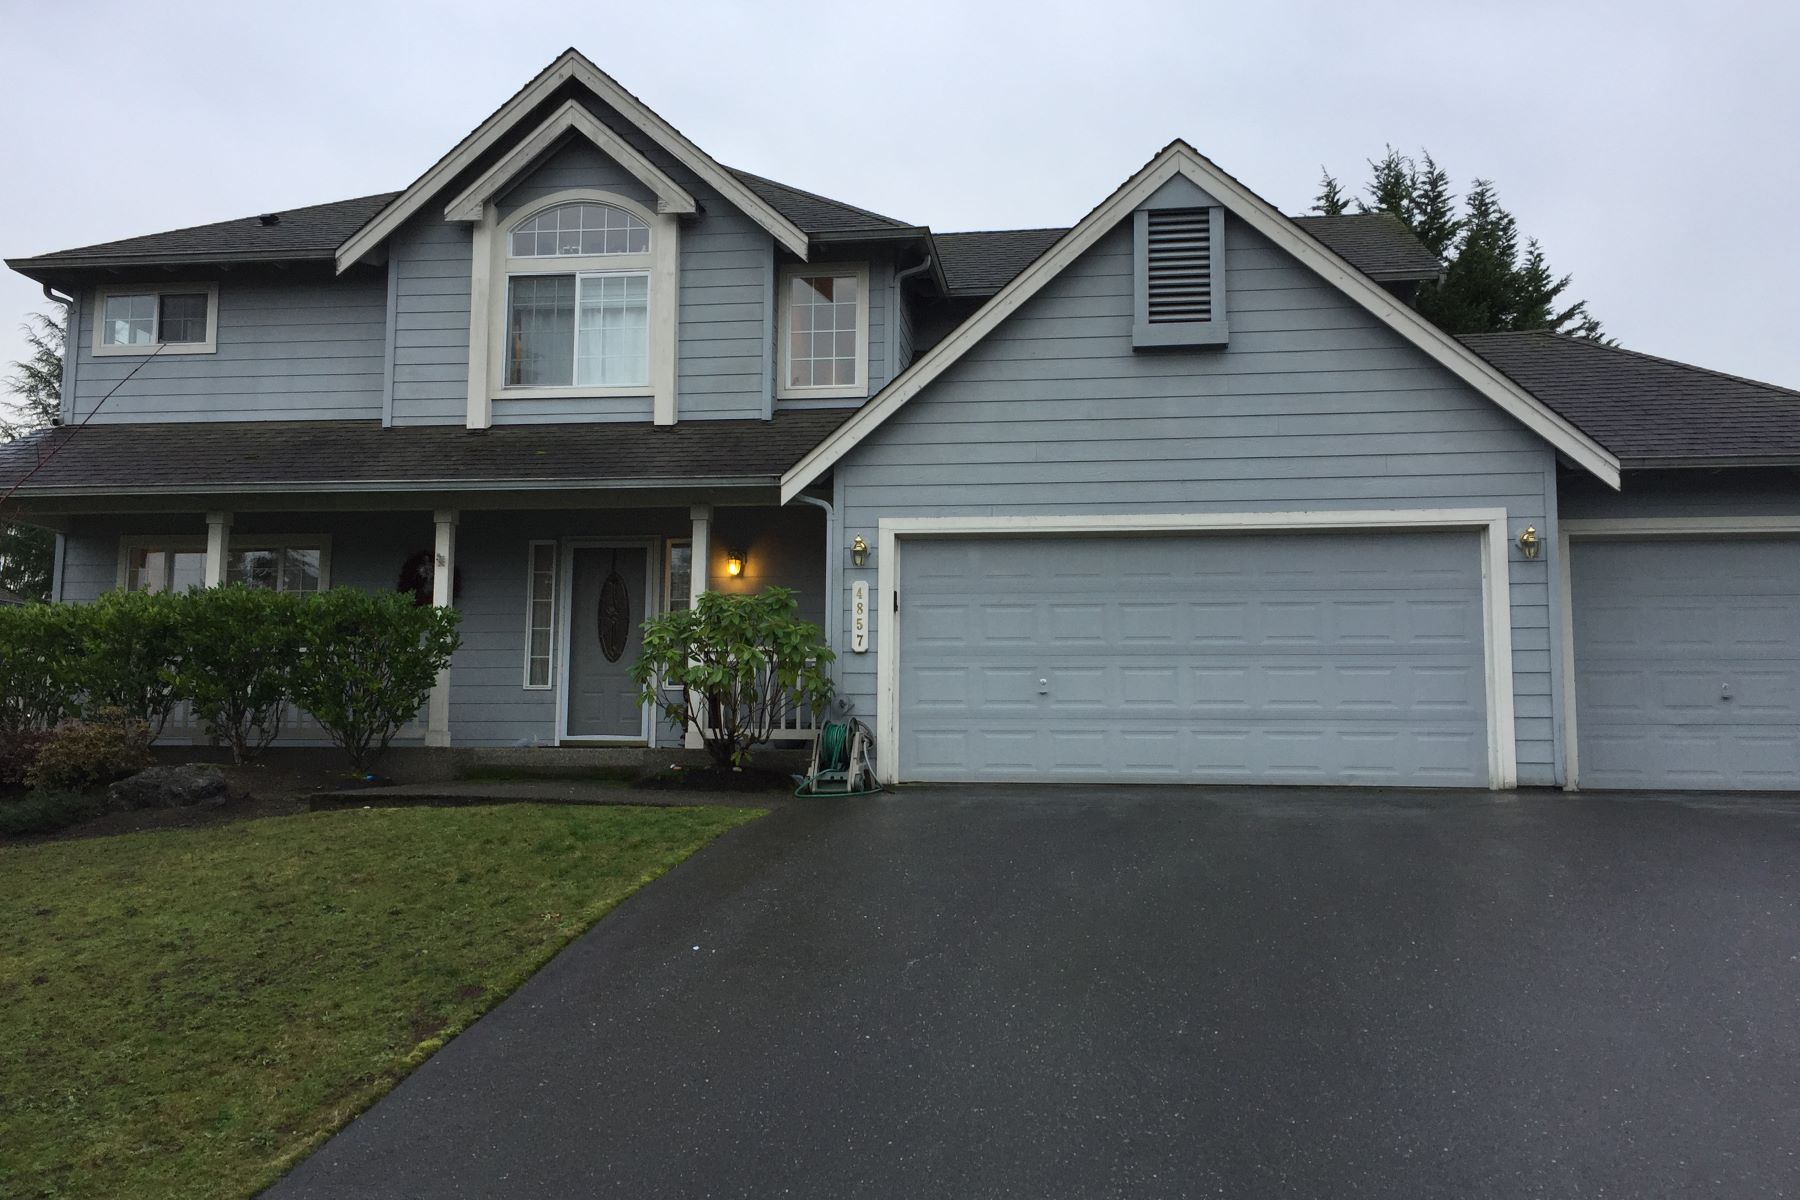 Single Family Homes for Sale at Silverdale Awaits 4857 NW Walgren Dr Silverdale, Washington 98383 United States